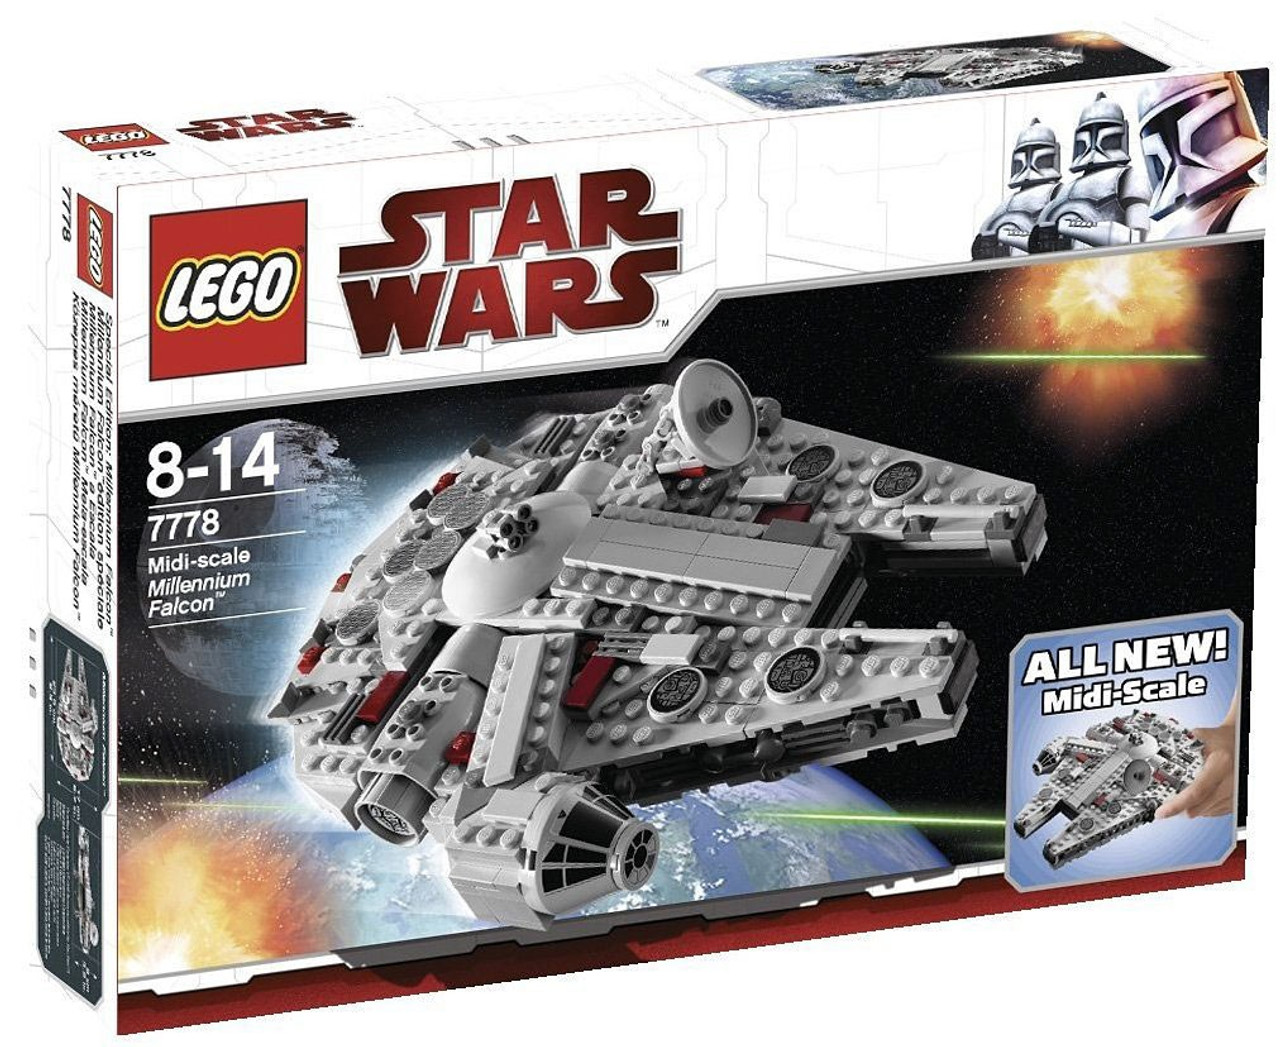 Lego Star Wars A New Hope Midi Scale Millennium Falcon Set 7778